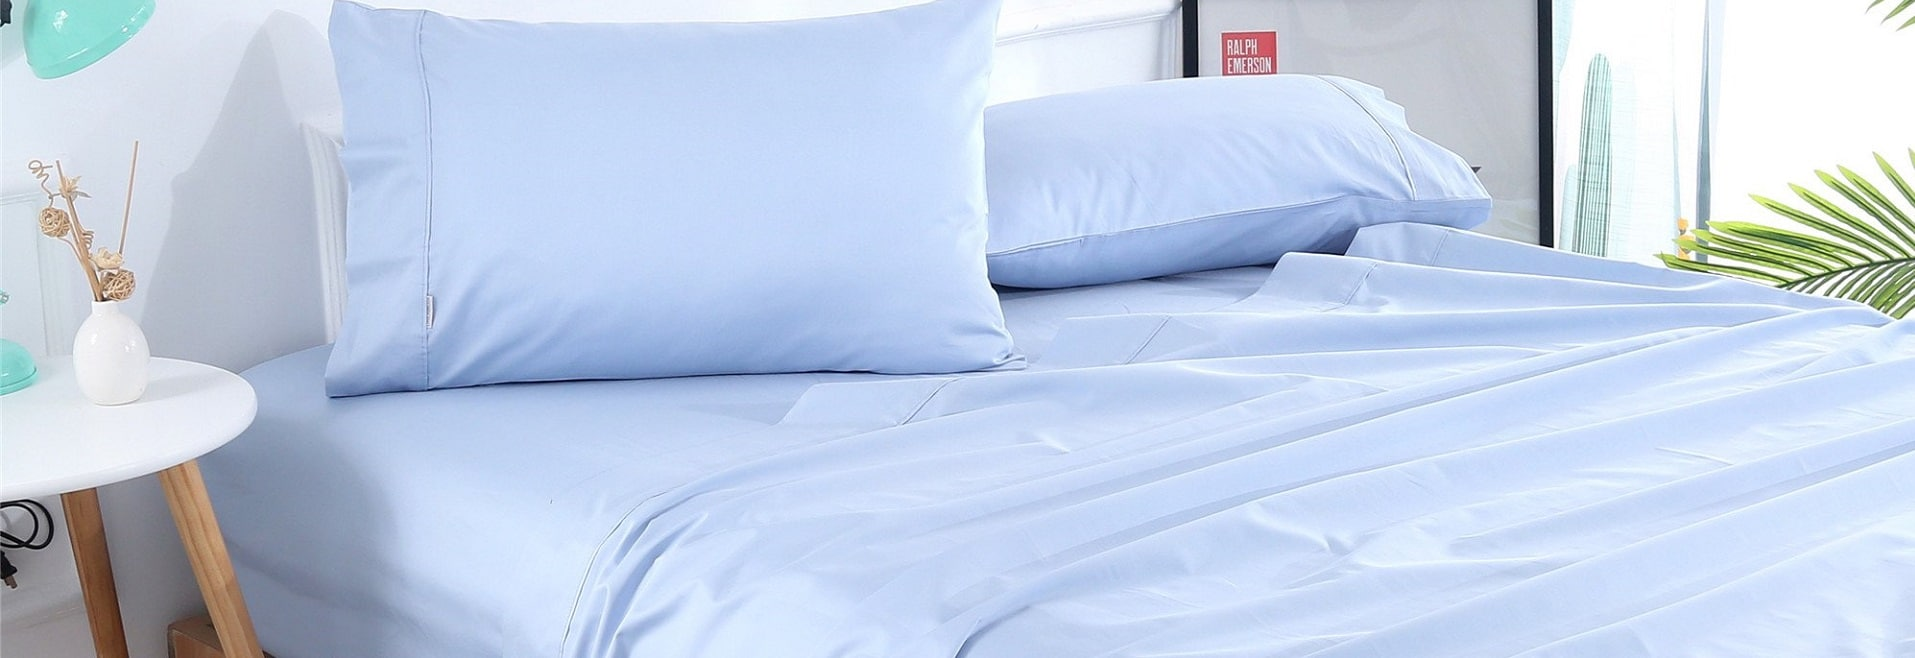 Best Egyptian Cotton Sheets Reviewed in Detail